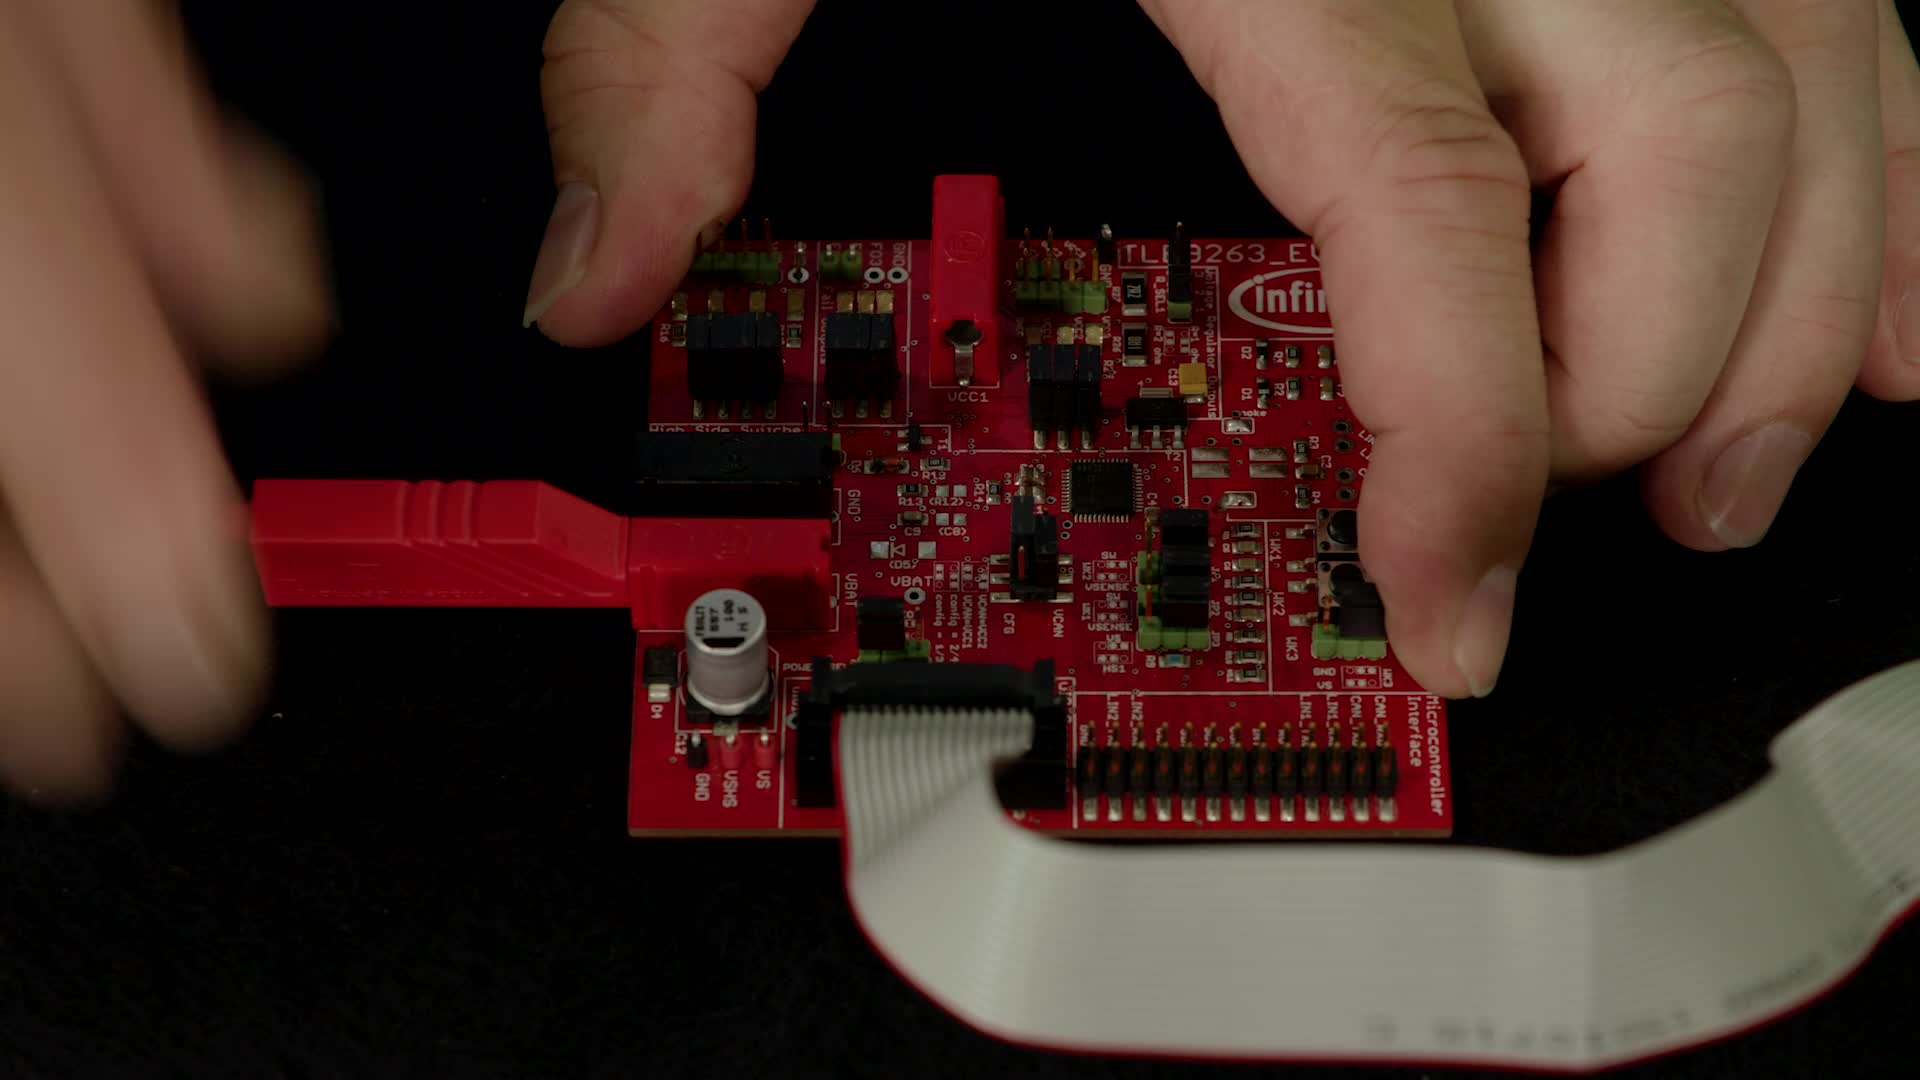 Unboxing of the Infineon System Basis Chip TLE9263-3BQX Evaluation Board